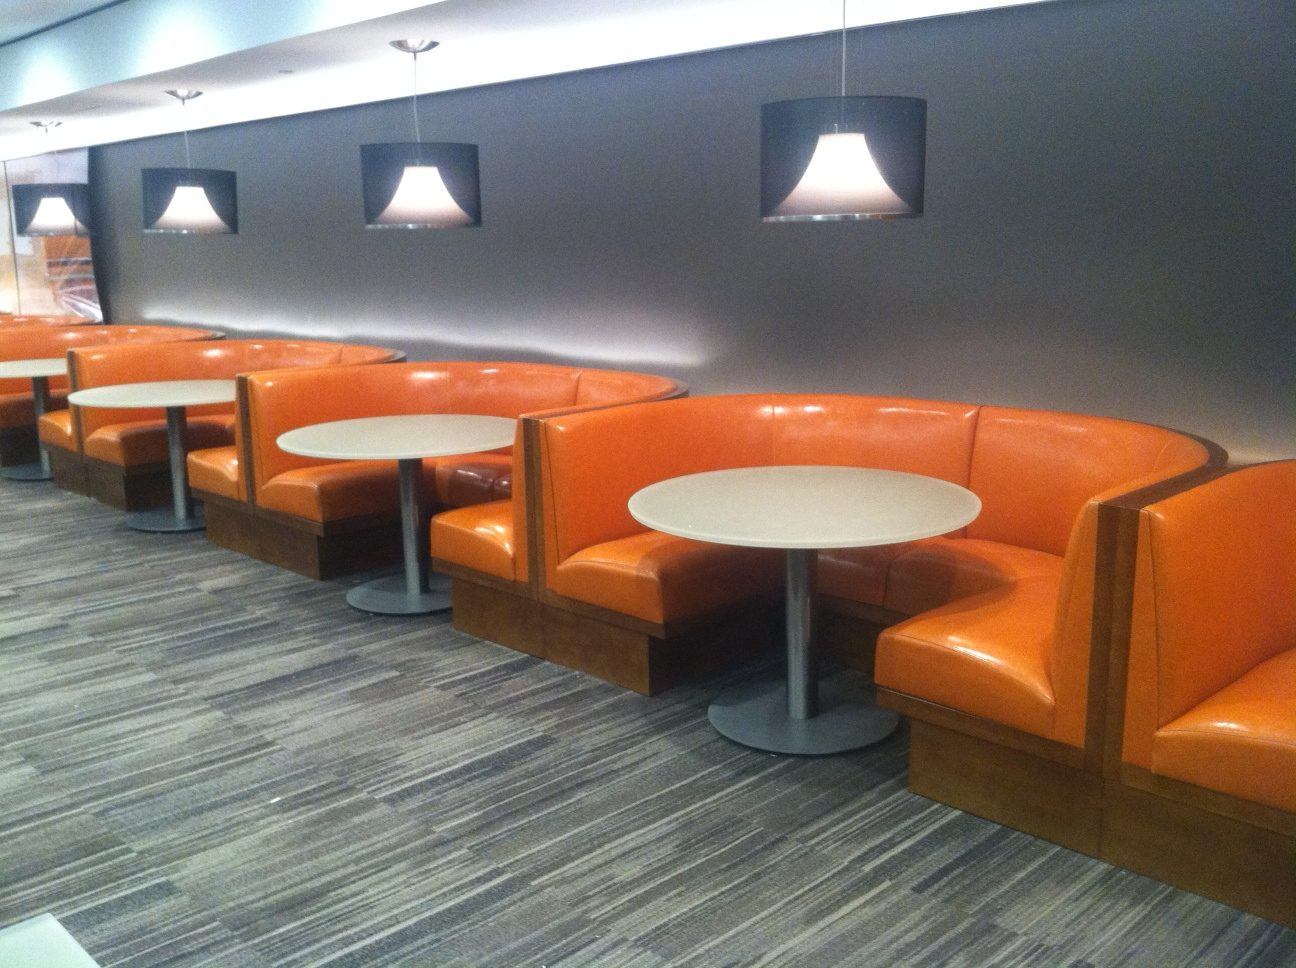 Levinger Booths and Banquettes - Custom Project for Morgan Stanley